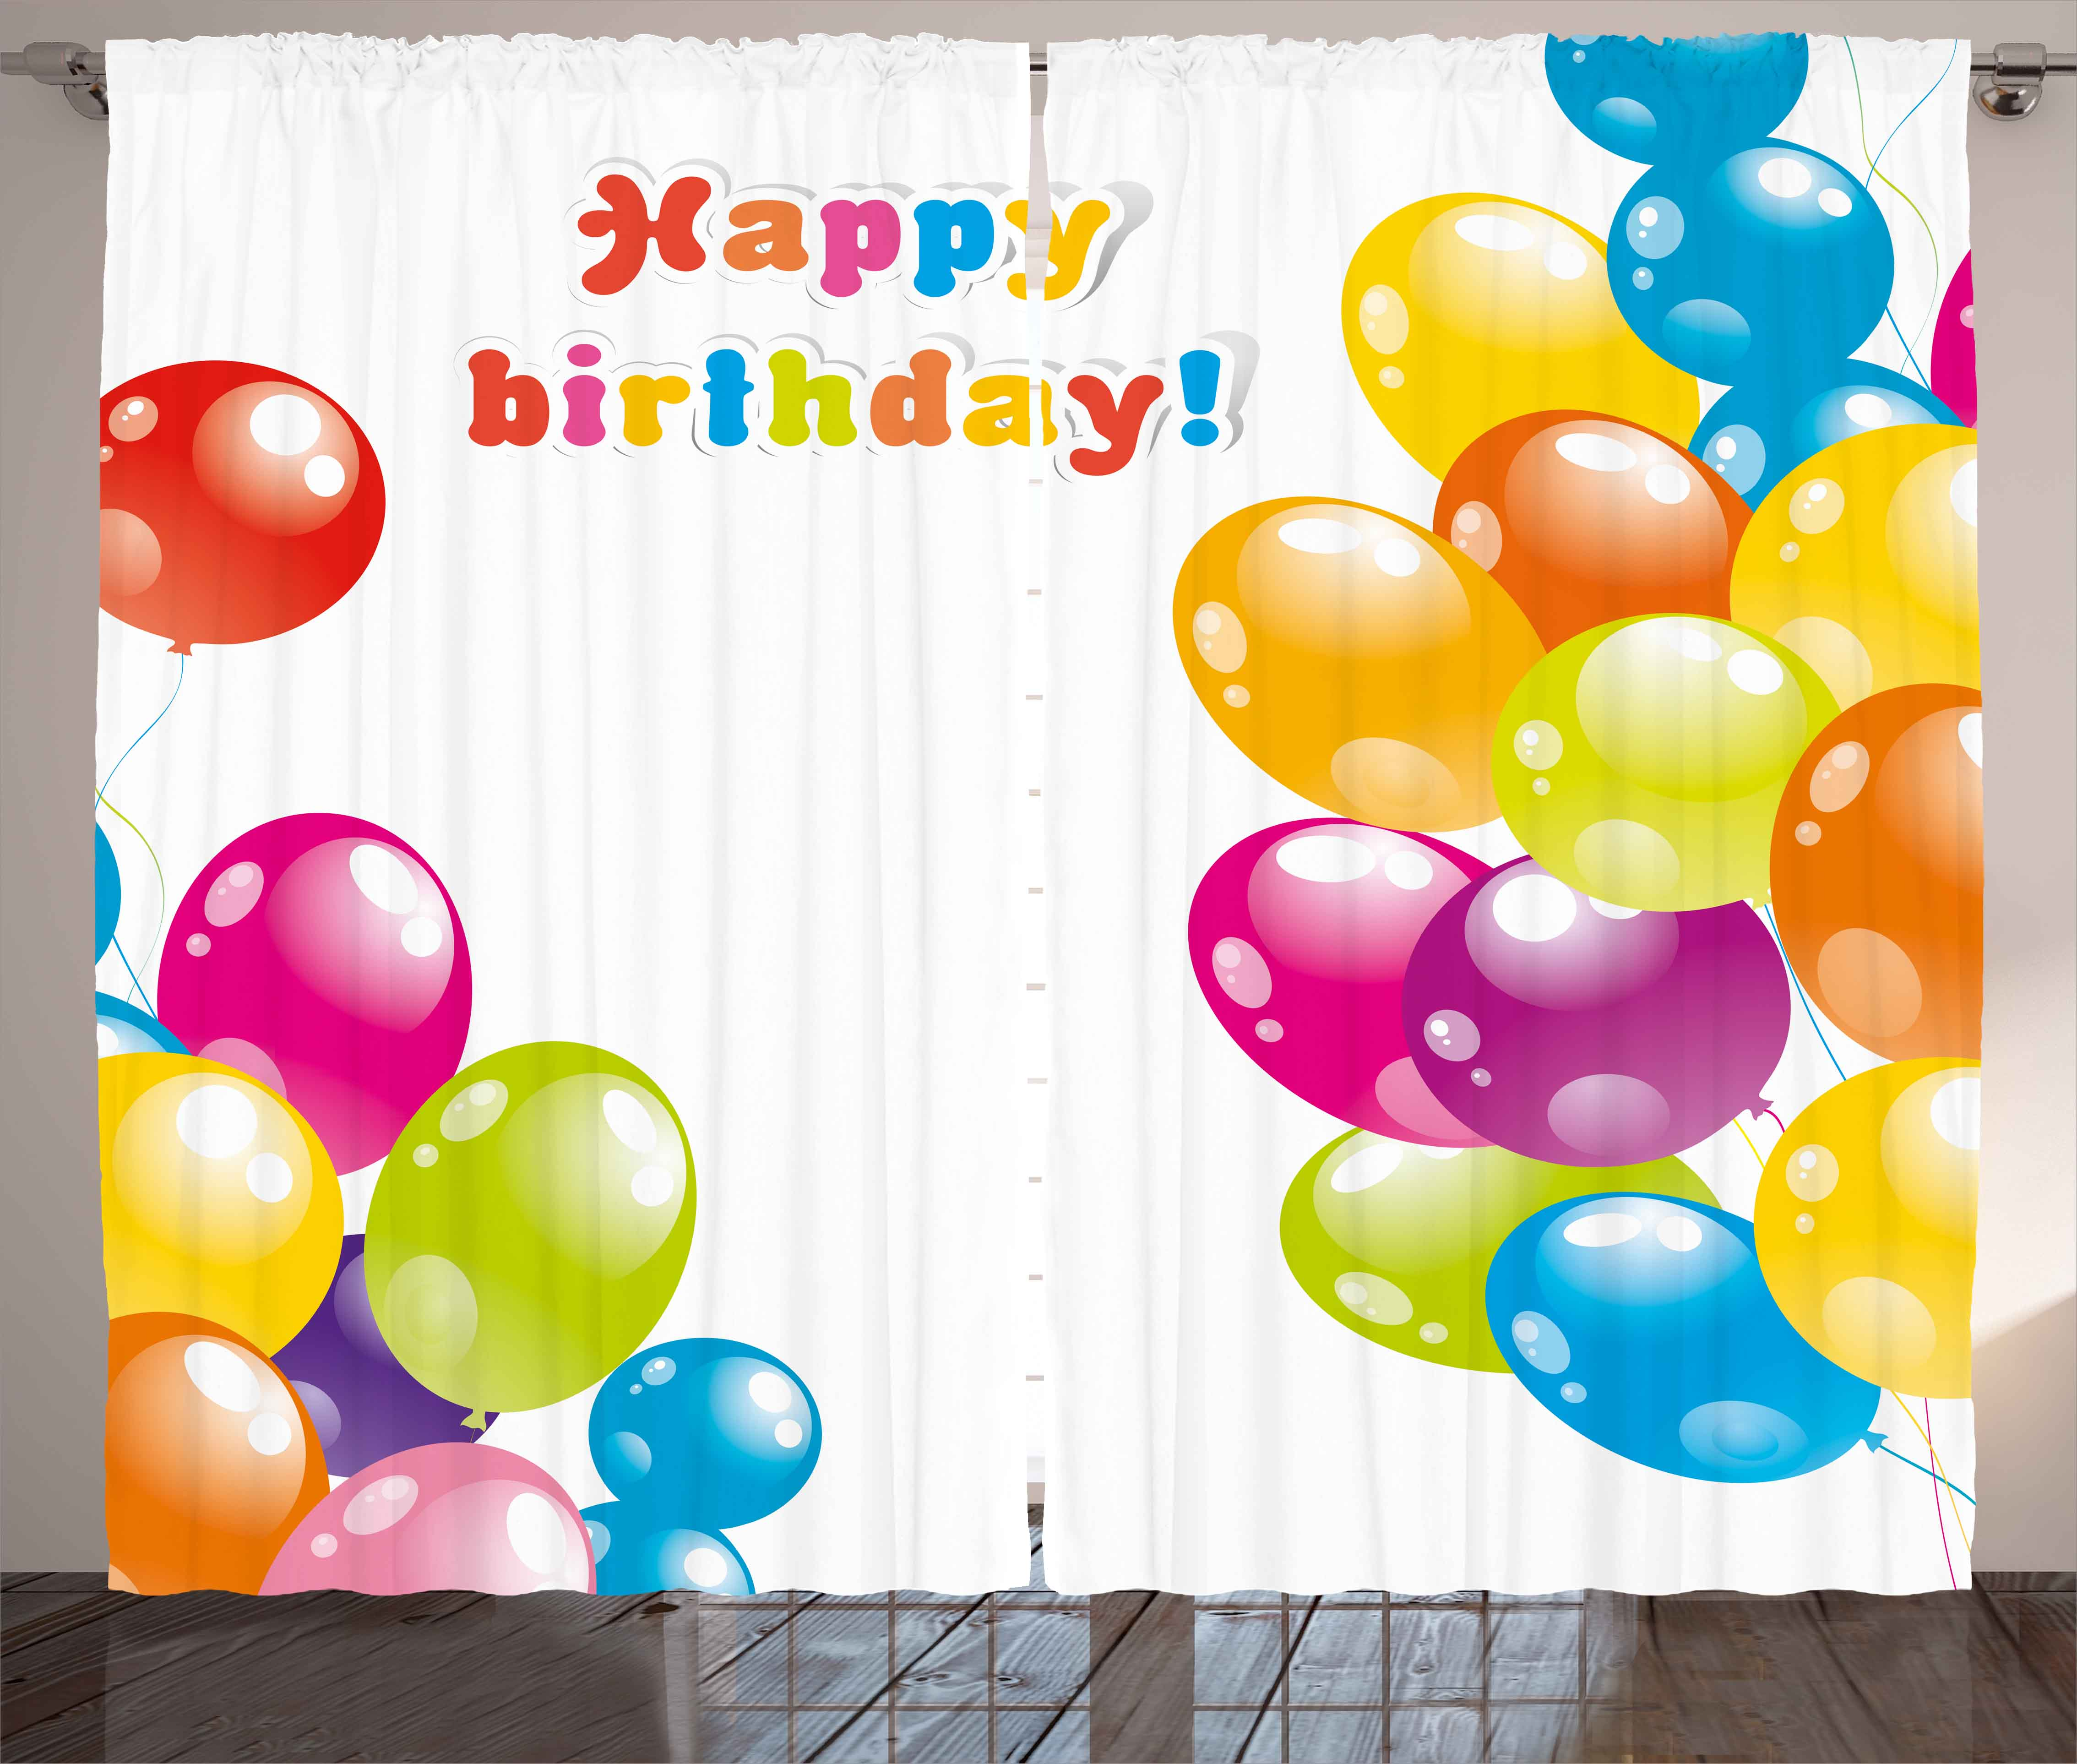 Birthday Curtains 2 Panels Set Colorful Festive Mood Flying Party Balloons In Surprise Happy Occasion Up Window Drapes For Living Room Bedroom